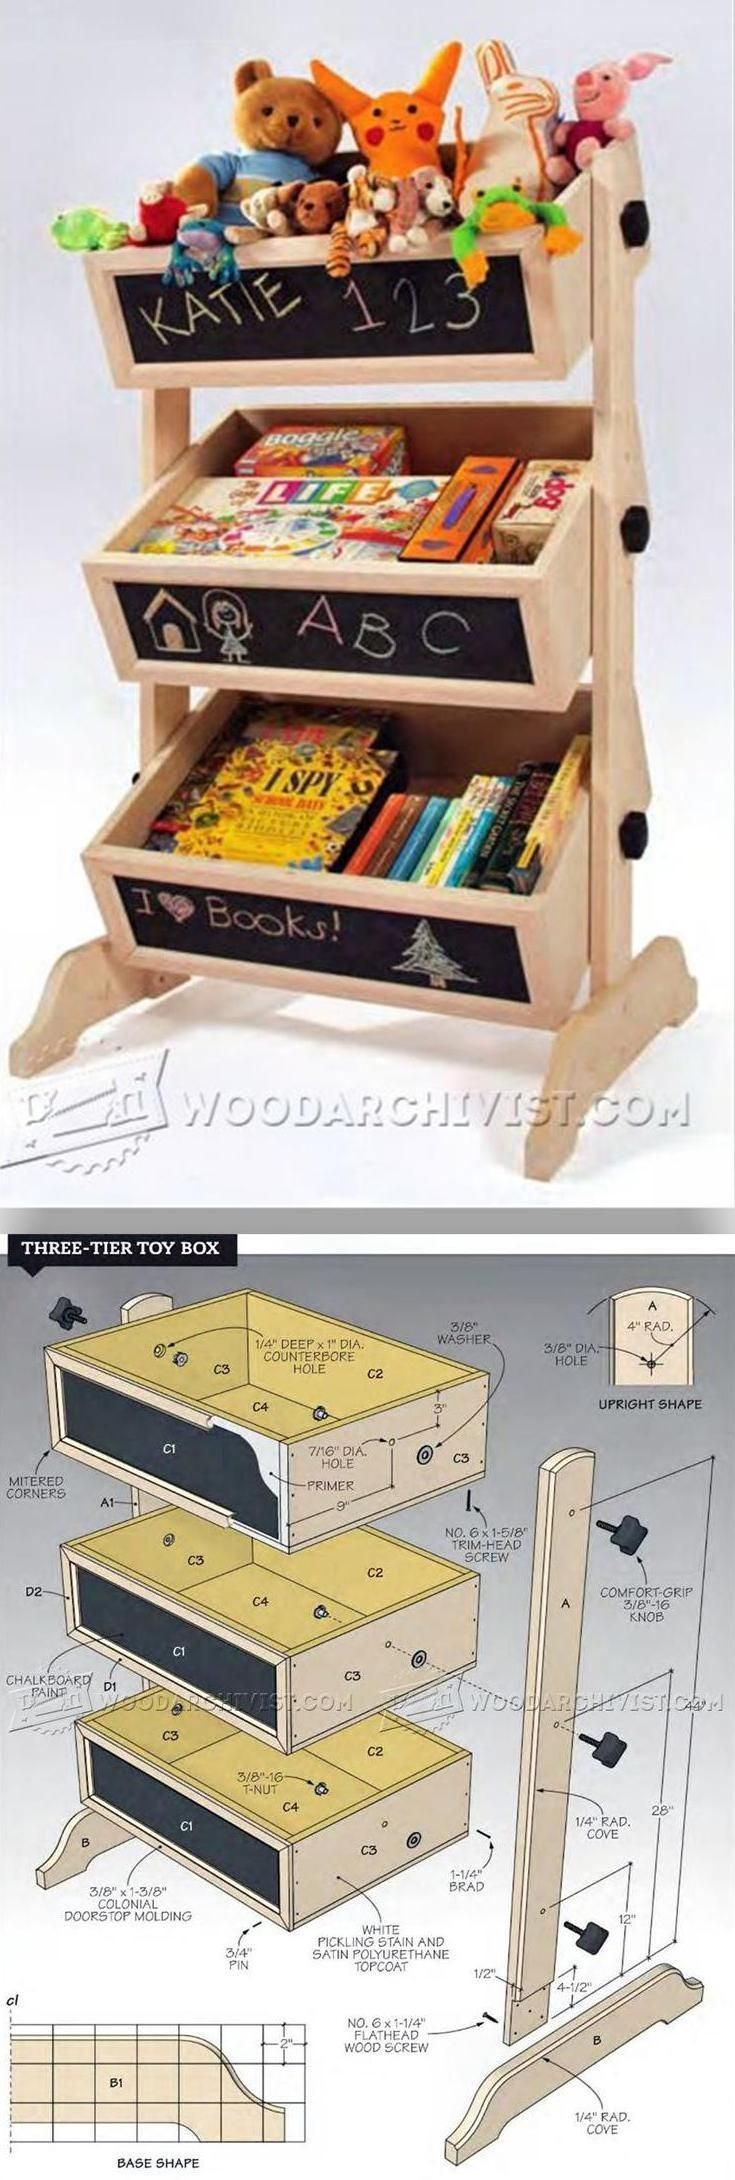 Three-Tier Toy Box Plans - Wooden Toys Plans and Projects | WoodArchivist.com